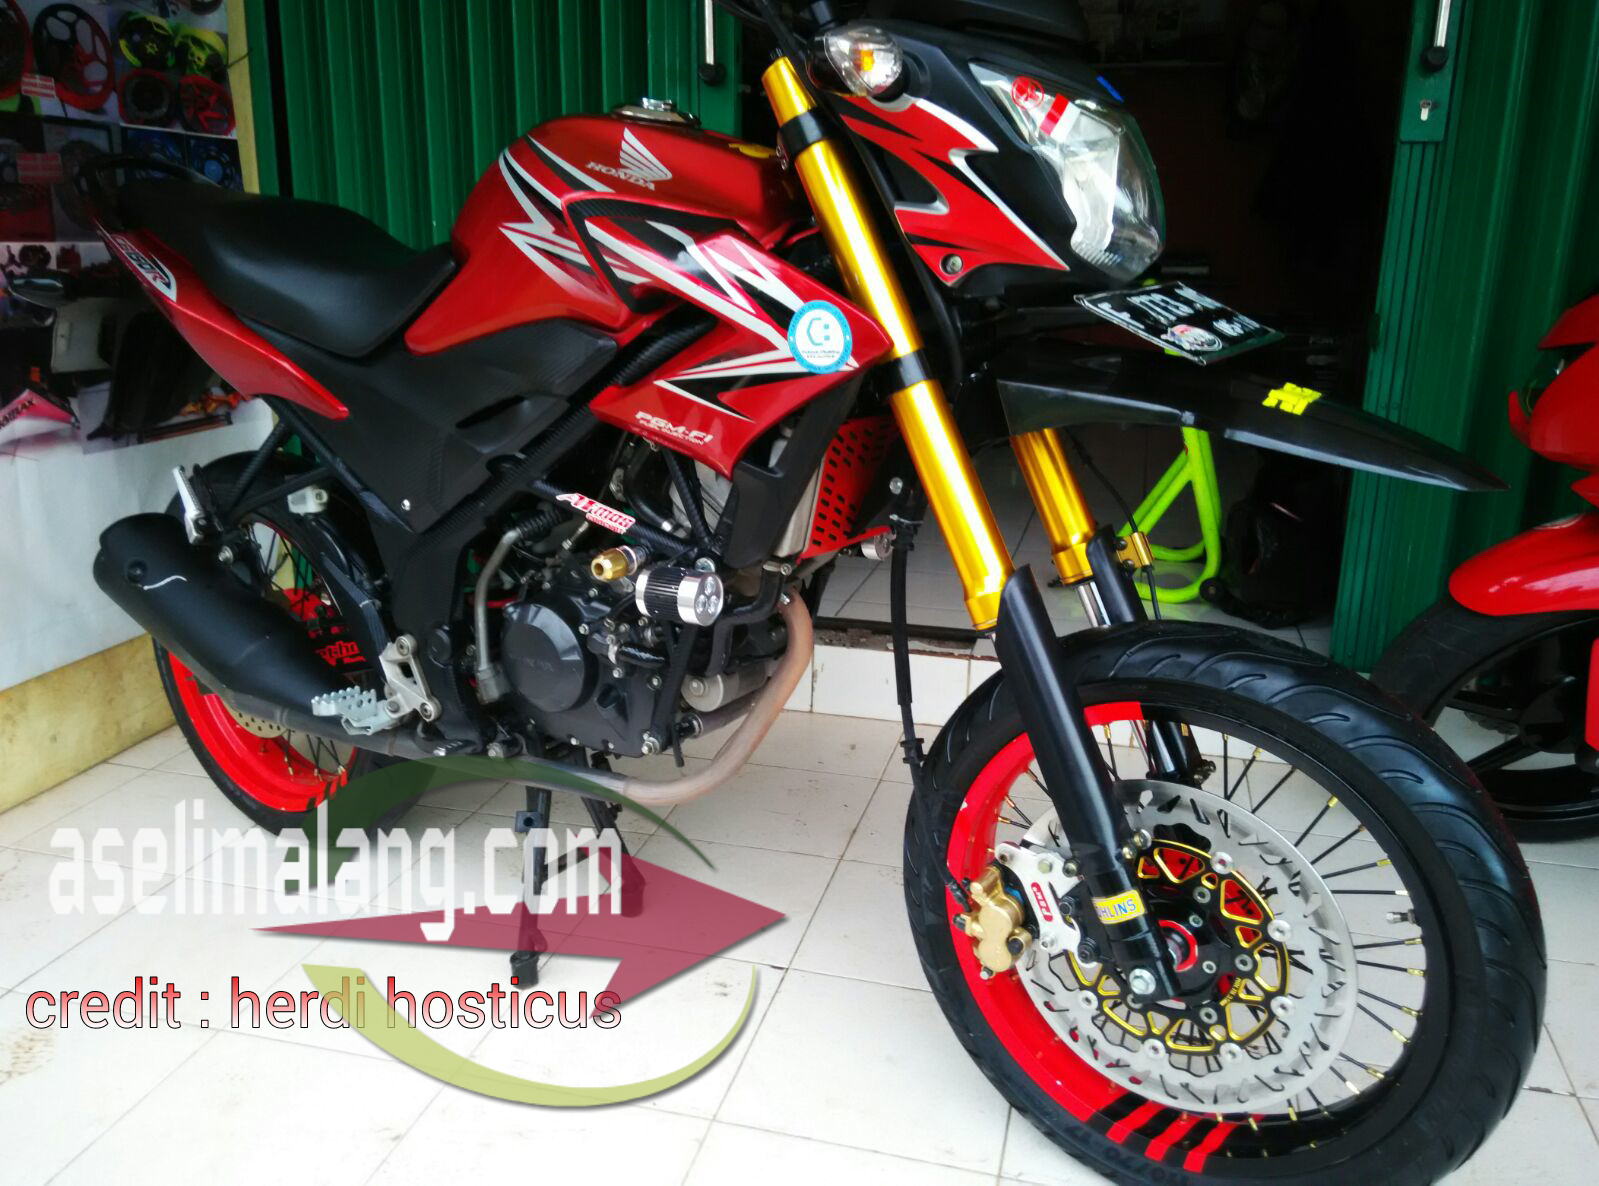 108 Modifikasi Motor Cb 150 R Supermoto Modifikasi Motor Honda CB